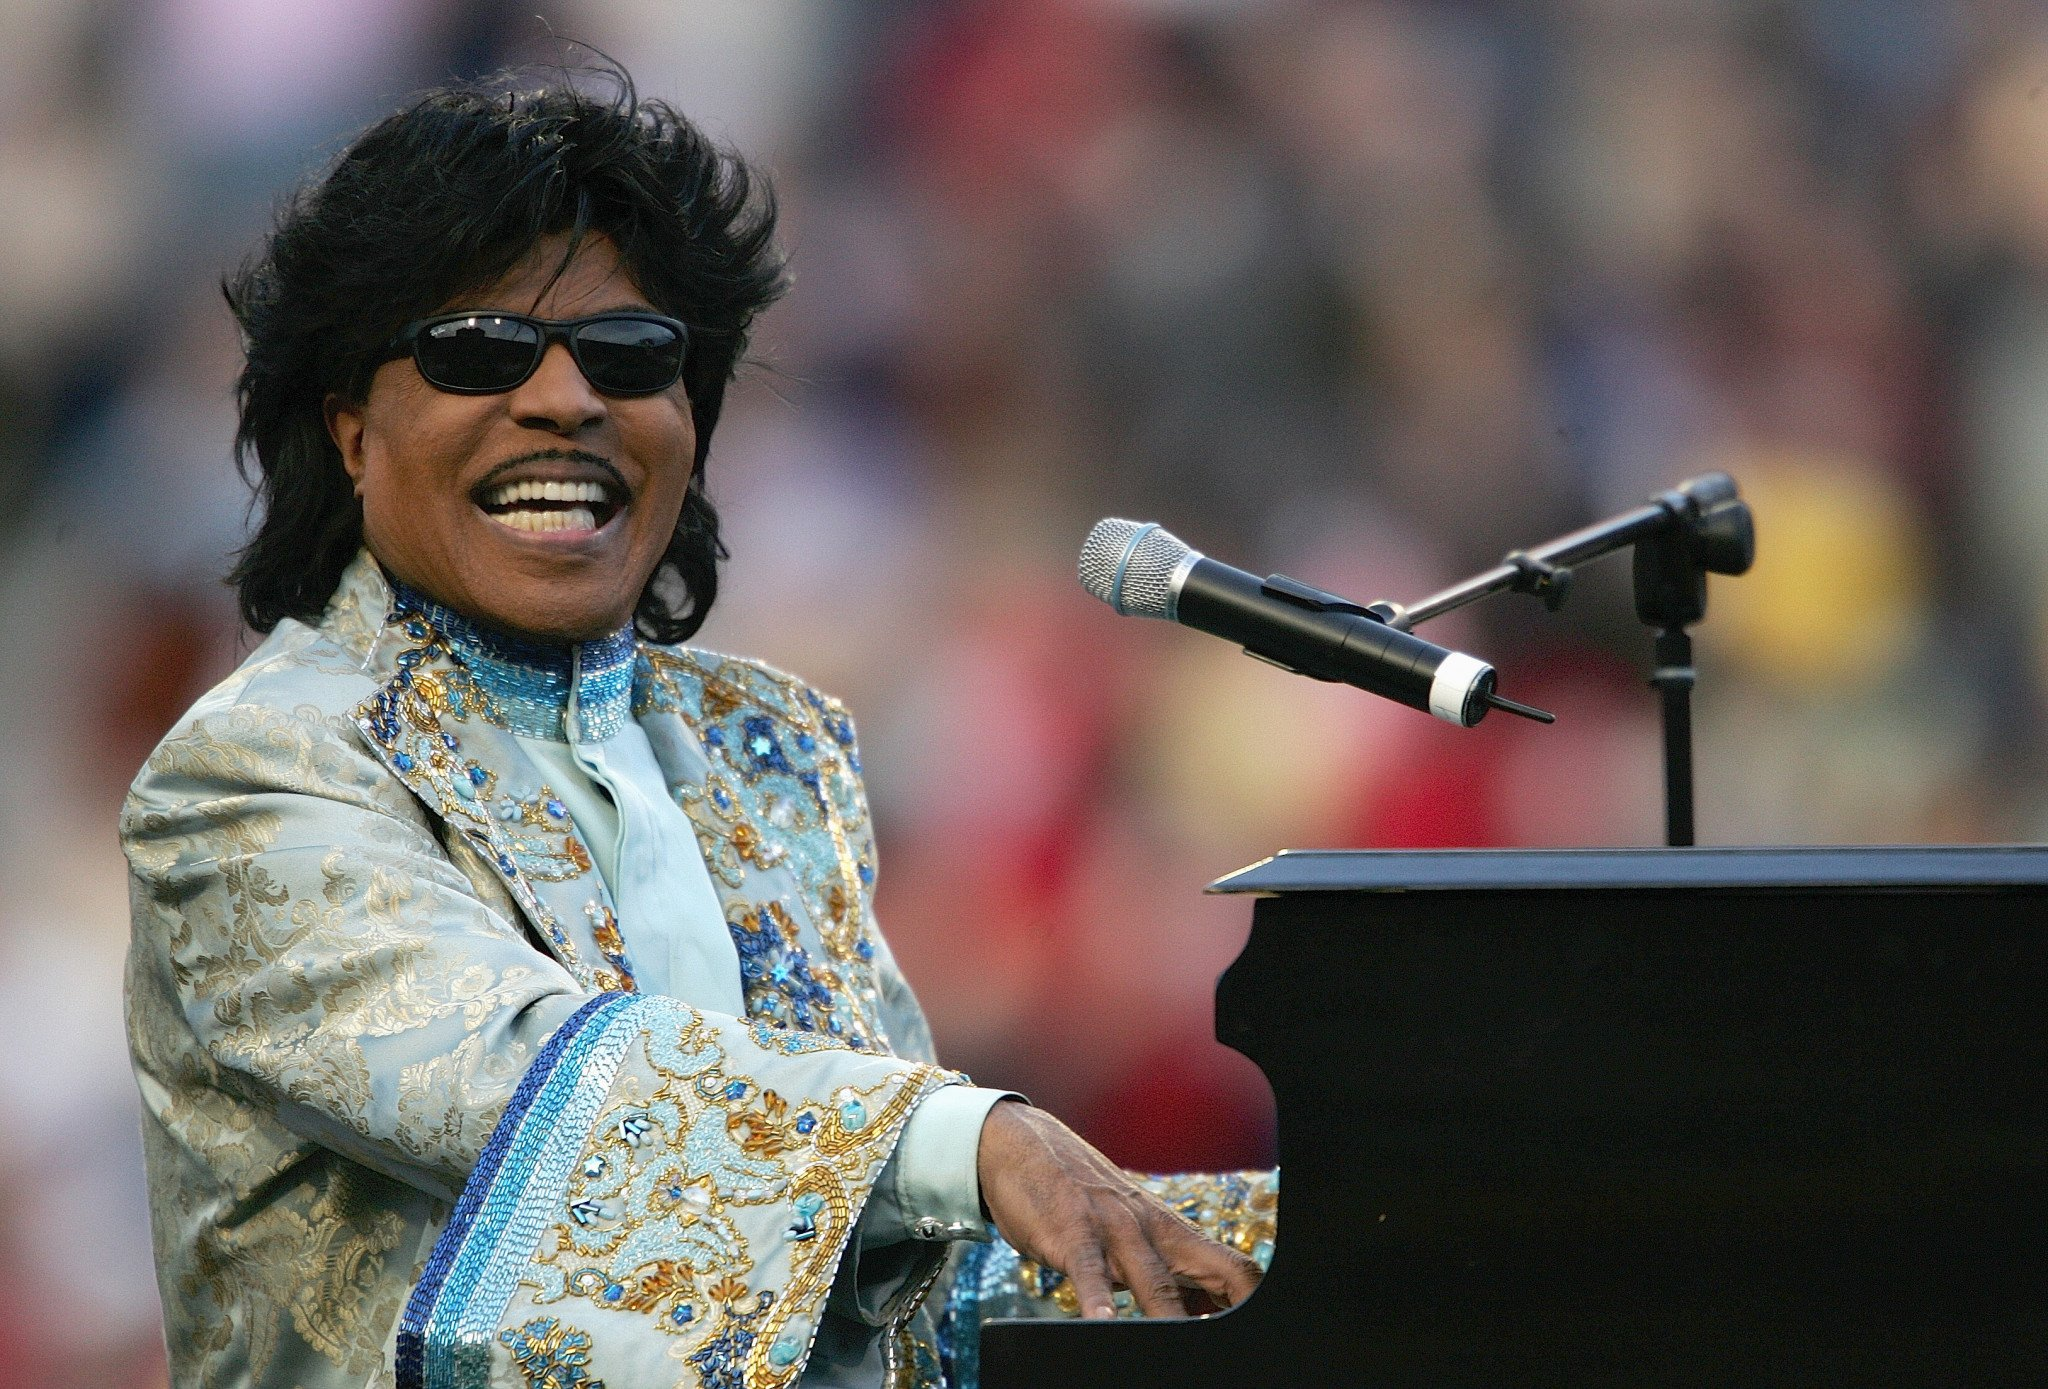 Tributes paid to musician Little Richard who performed at Closing Ceremony of Atlanta 1996 Olympics